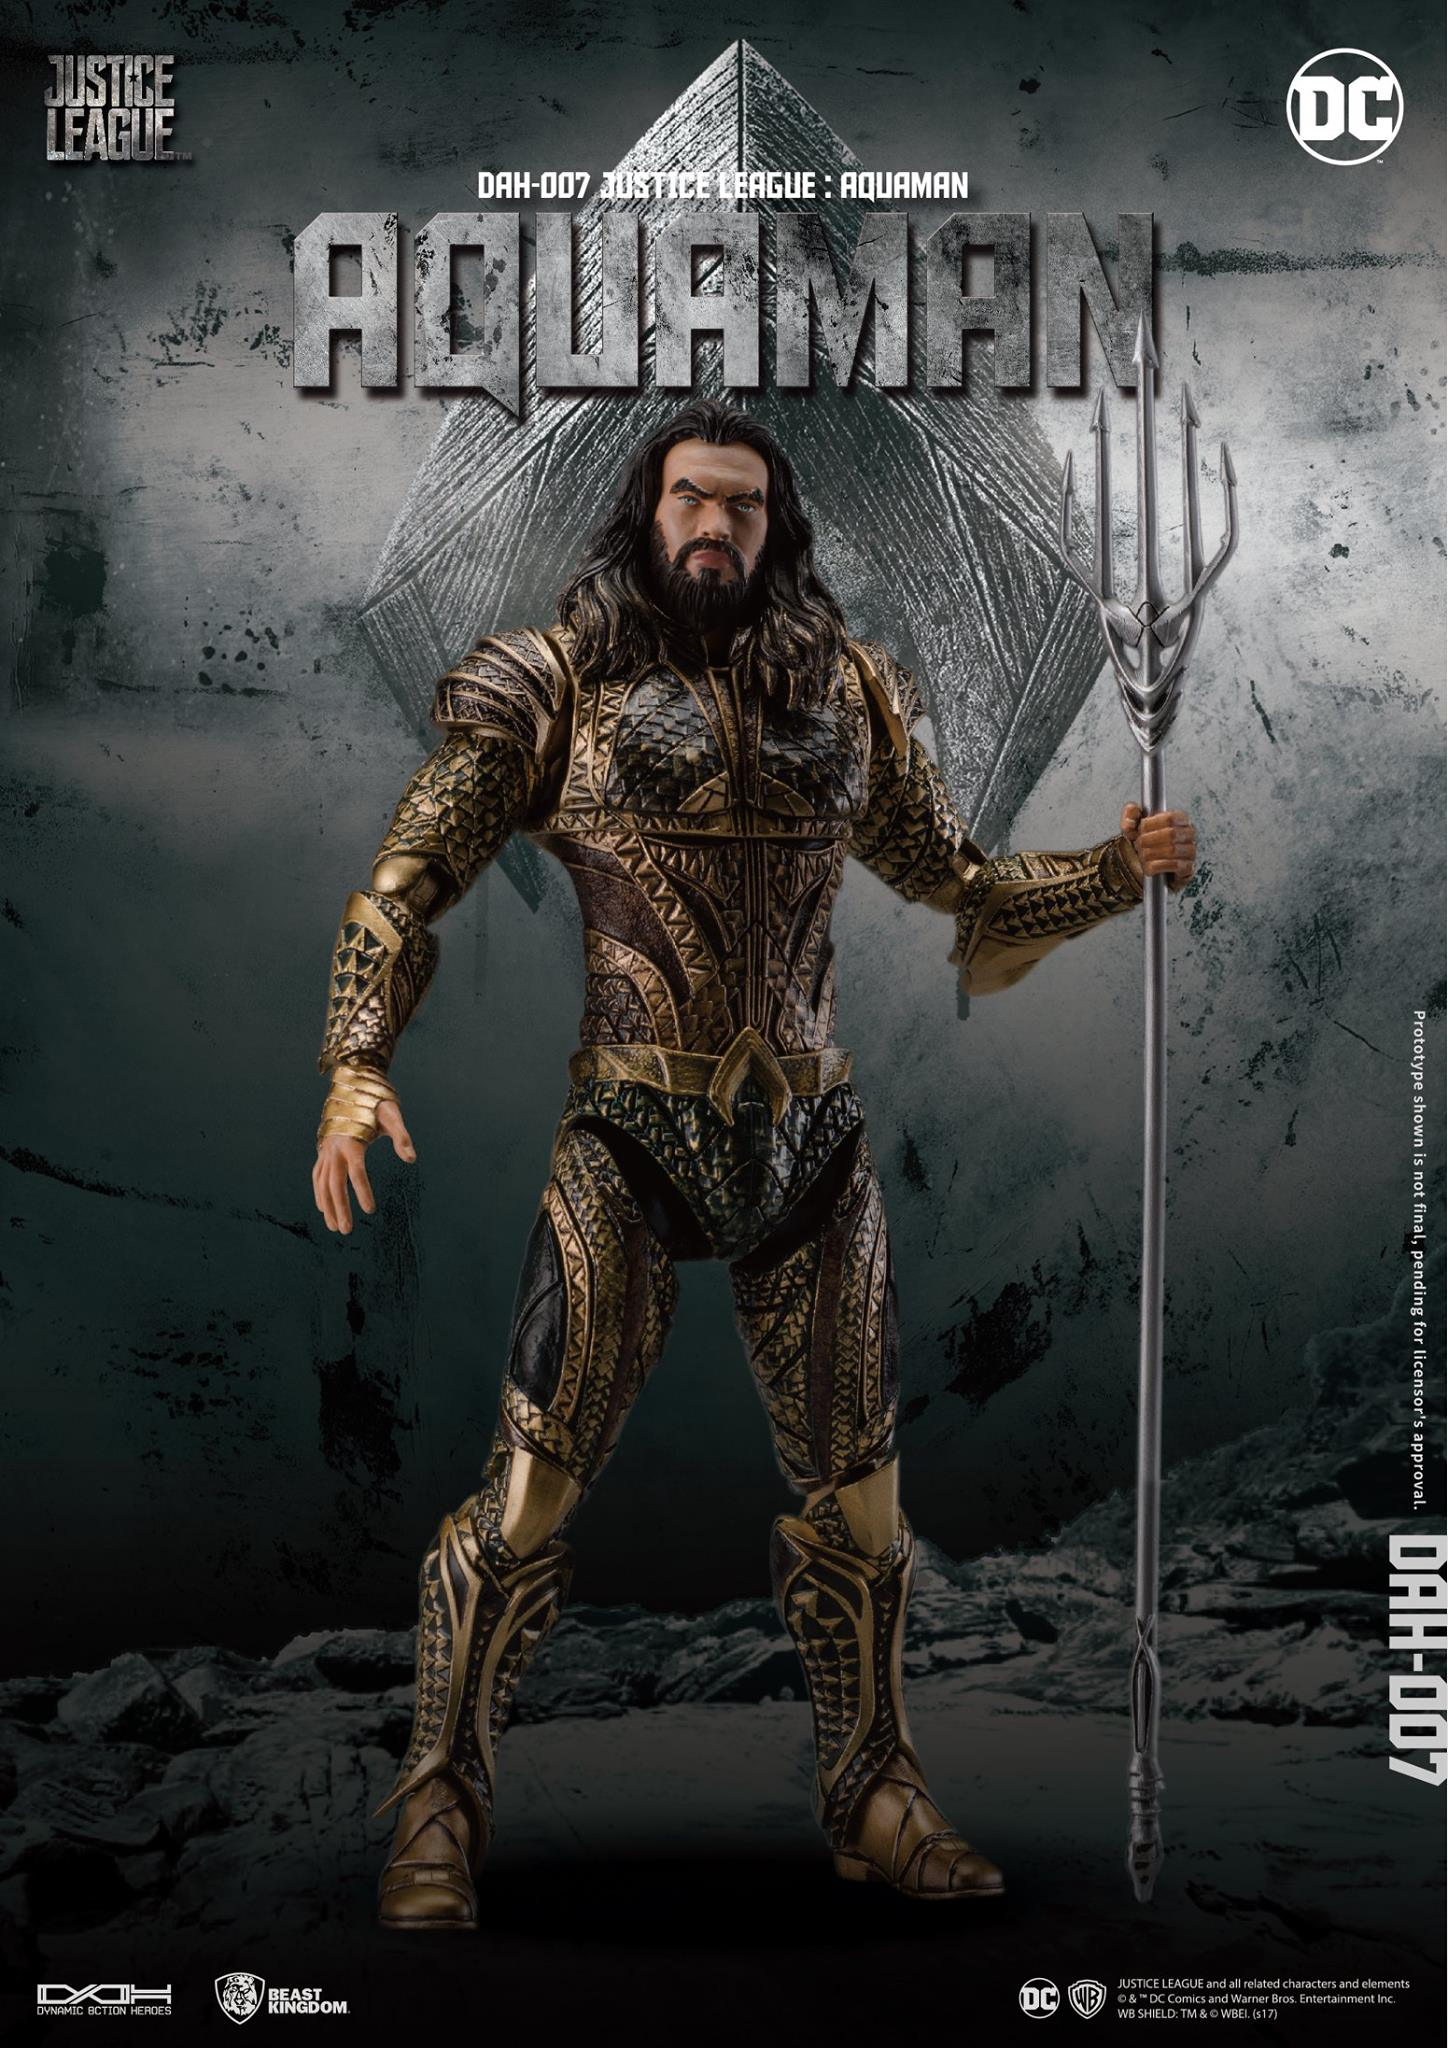 DAH-Justice-League-Aquaman-001